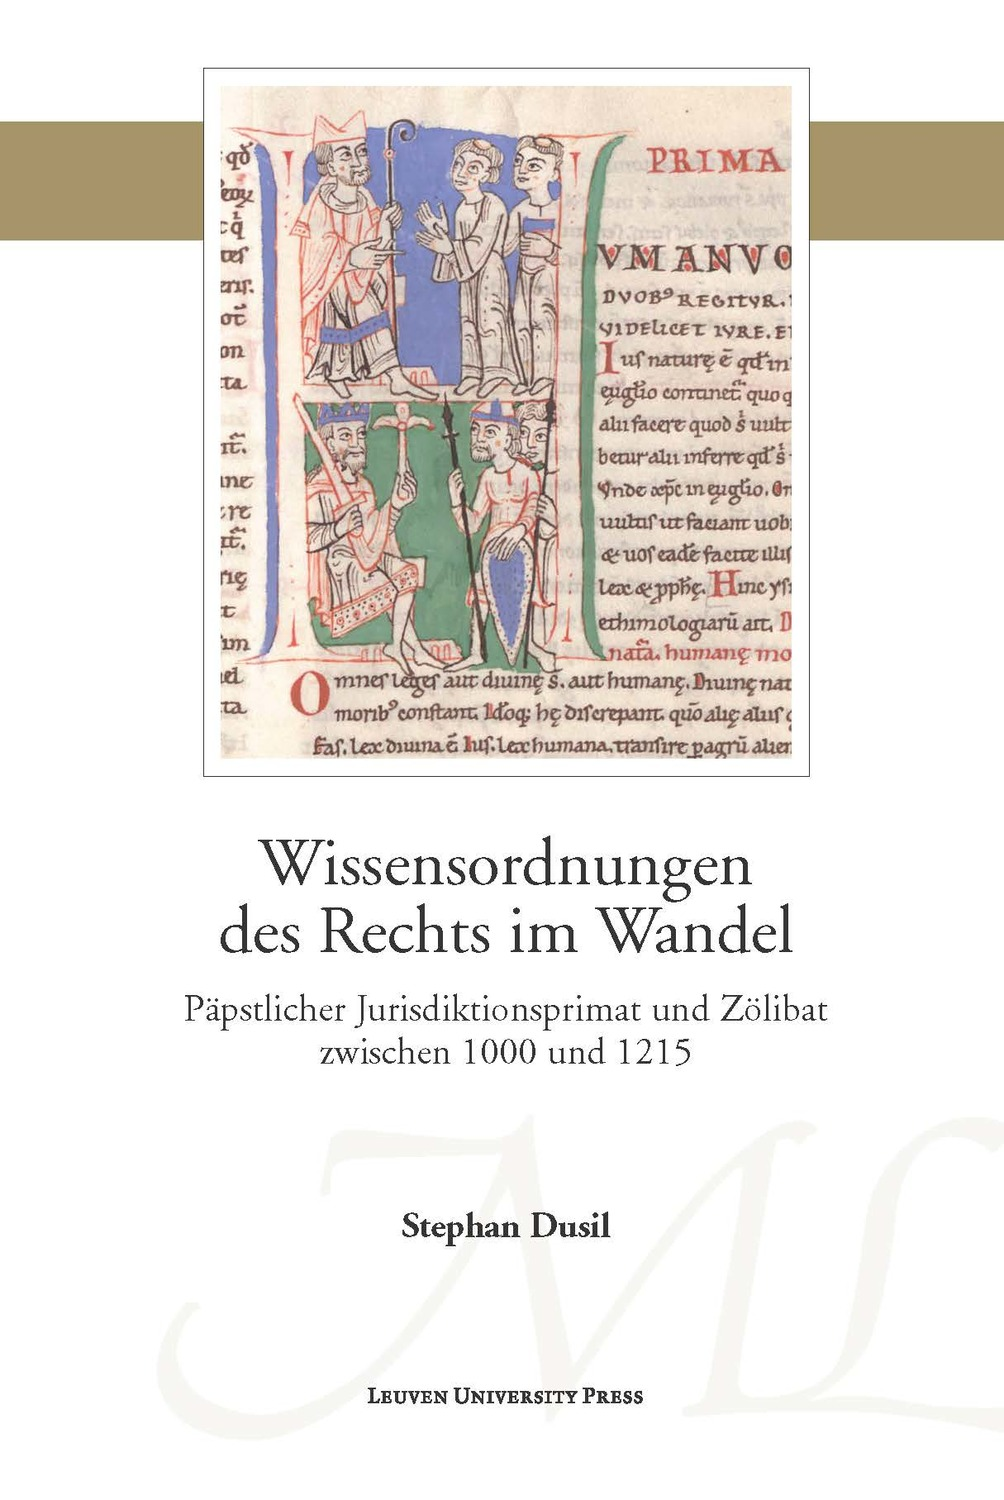 After 1000, work began in earnest to develop Canon Law into a fully developed complex legal system and academic discipline. New book tells the story by following the cases of […]